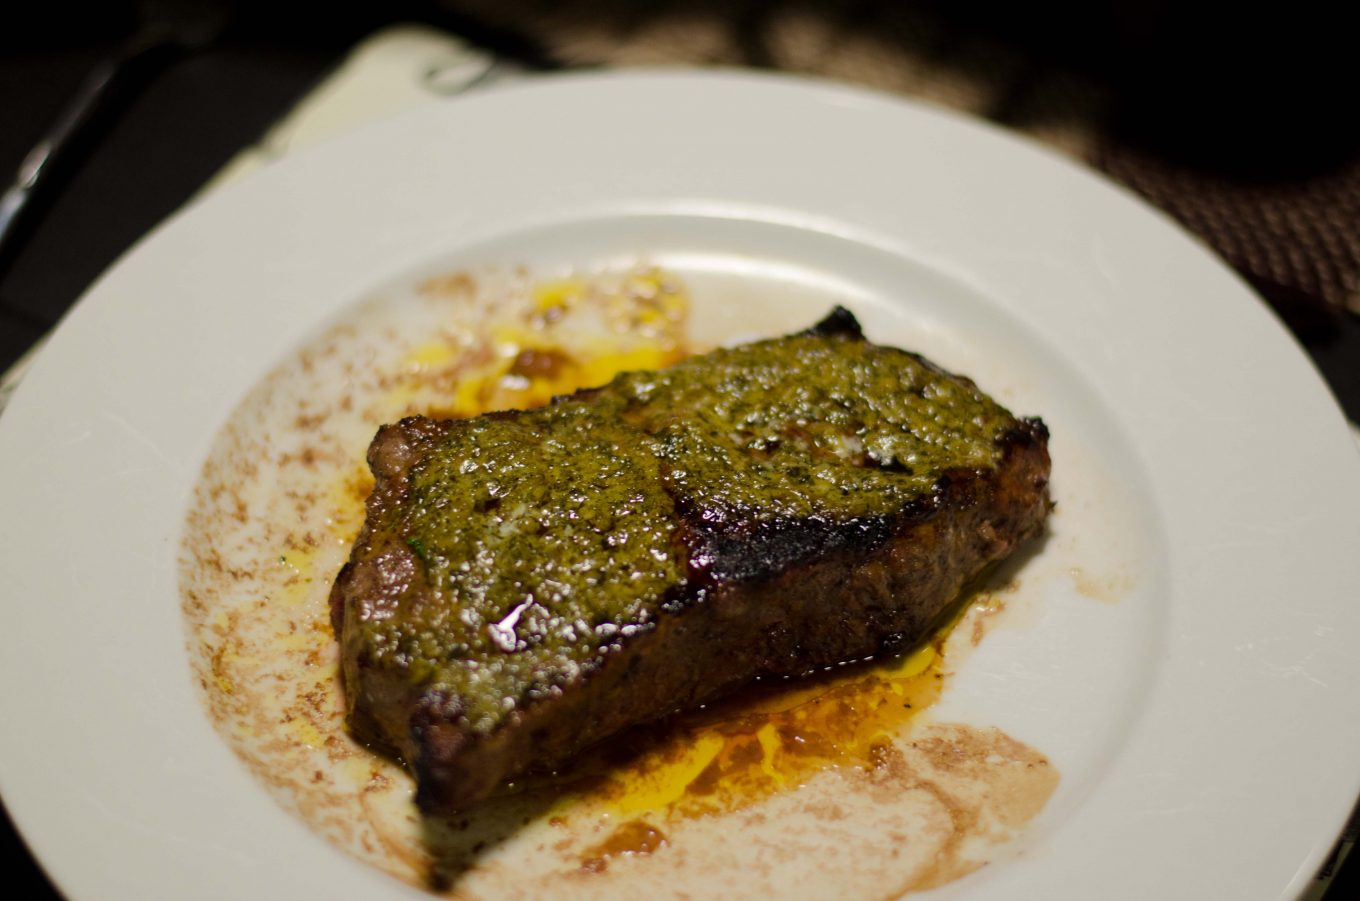 Grilled Steak with Cafe de Paris Butter